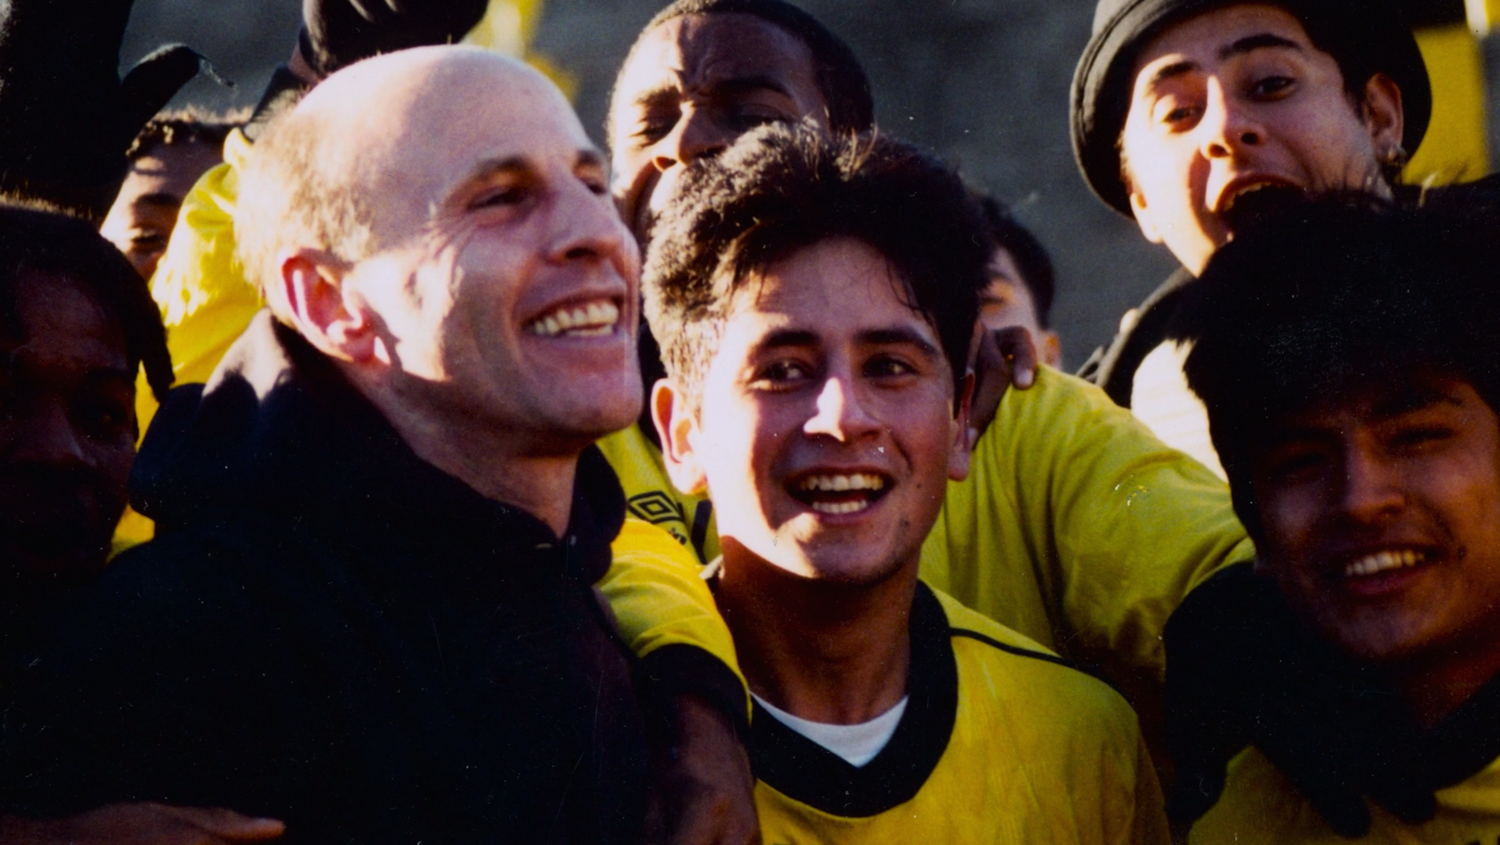 'Coach Jake': A new documentary on an inspiring man's battles, on and off the field